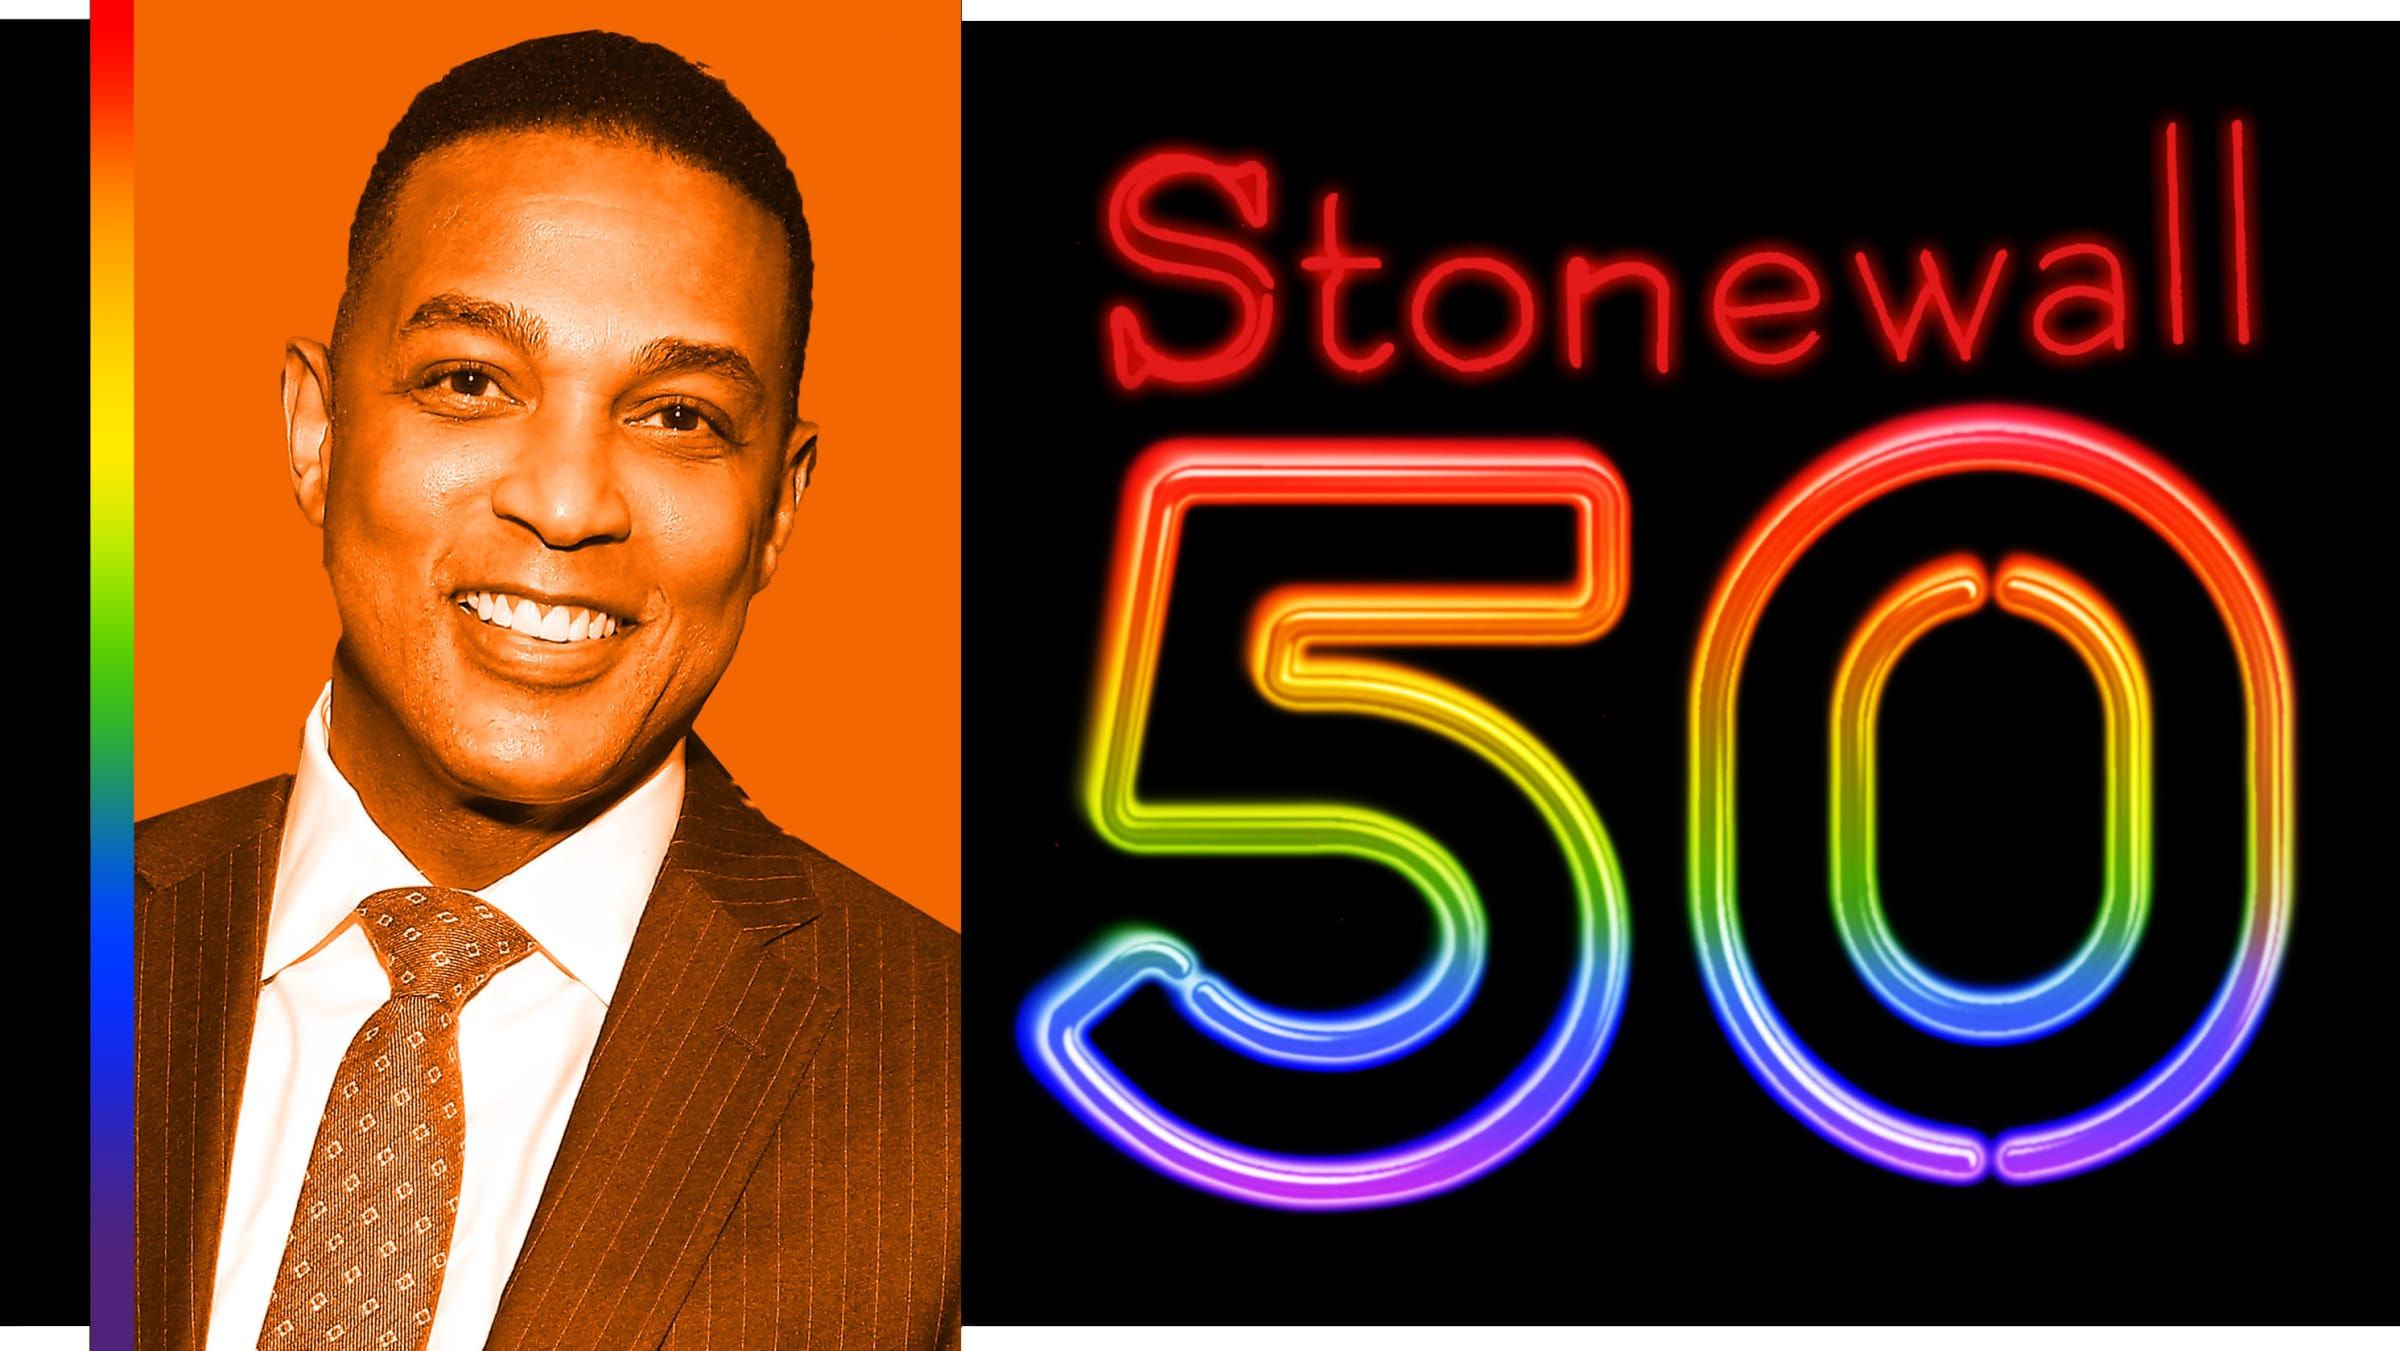 Don Lemon on Stonewall 50: 'I'm Engaged. A Gay Man Might Become President. But the Struggle Isn't Over.'